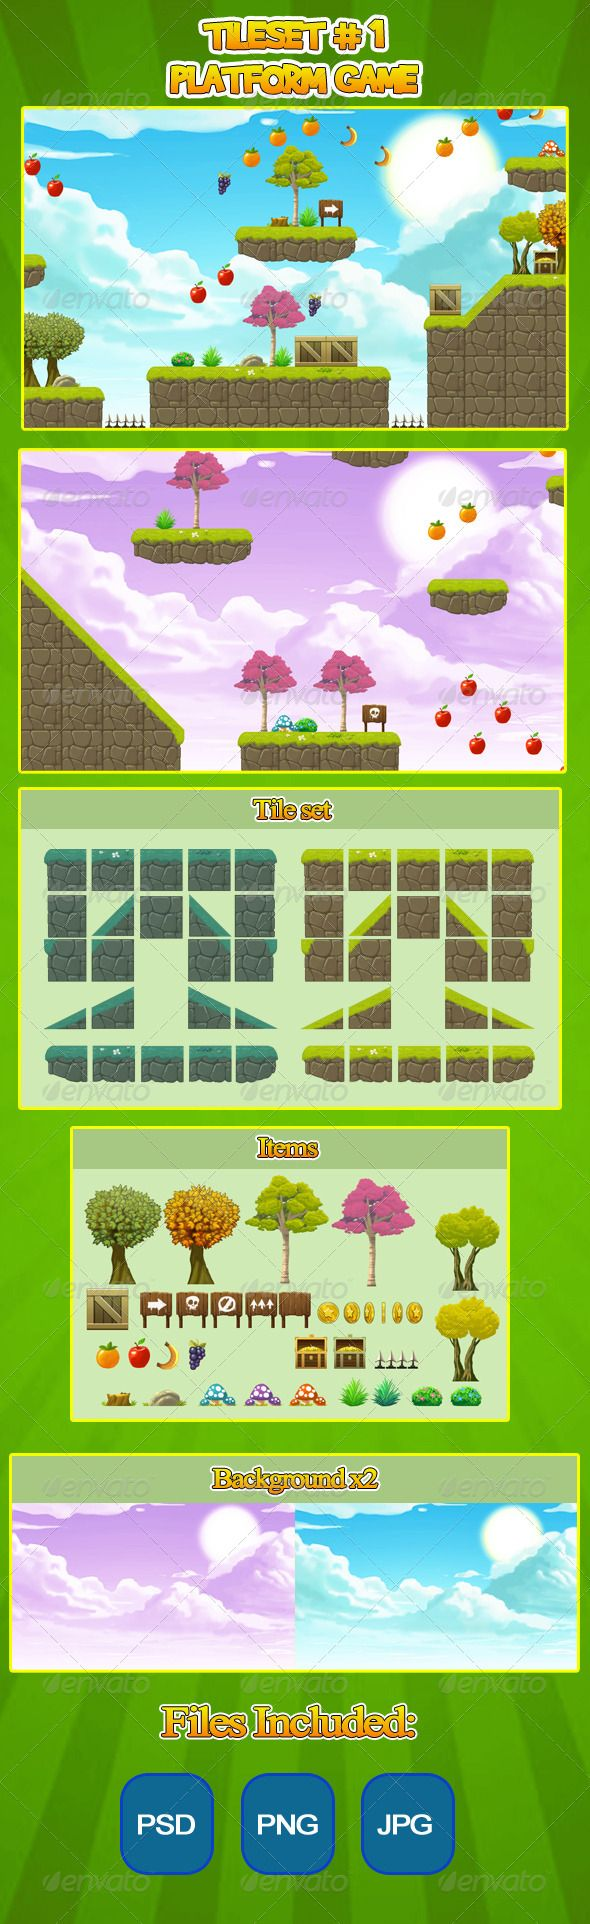 2D Tileset Platform Game #GraphicRiver This is a tileset for a 2D plataform game. You can easily create levels for your 2D game. The files are in transparent PNG, PSD and JPG format. The tile files are 128×128 and the full resolution is 1700×1000 Have fun! Created: 8 December 13 Graphics Files Included: Photoshop PSD #Transparent PNG #JPG Image High Resolution: No Layered: No Minimum Adobe CS Version: CS Pixel Dimensions: 1700x1000 Tags 2d #Spritesheet #Tile Set #android #game #game sprites…